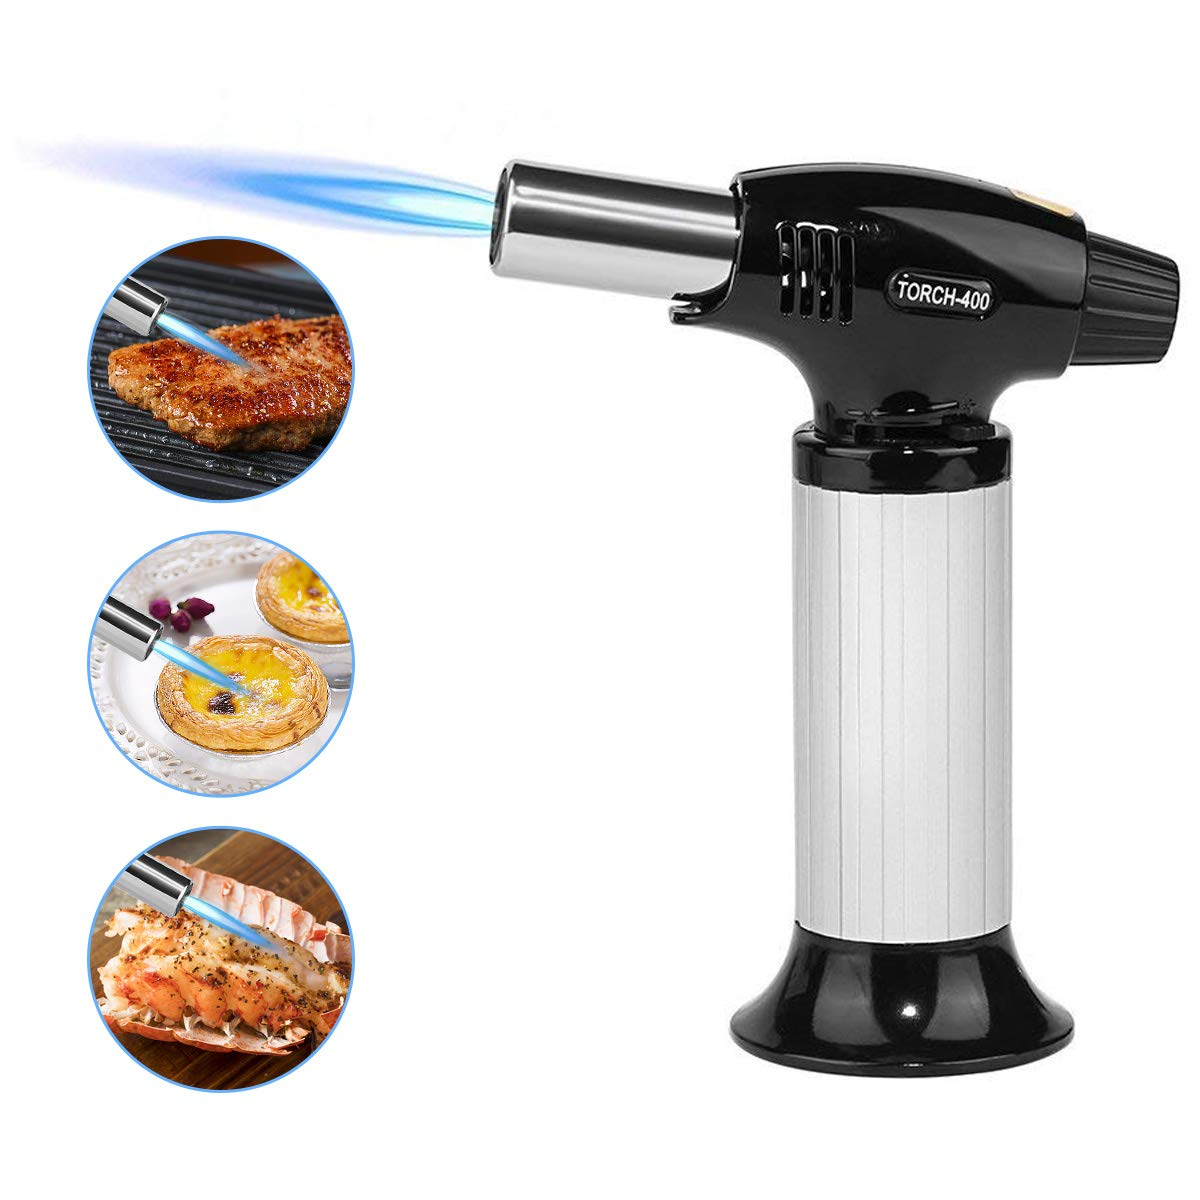 Blow Torch / Culinary Torch - Kitchen Cooking Butane Torch - Creme Brulee Torch - Adjustable Flame Lighter with Safety Lock for Cooking, BBQ and Baking, DIY - Butane Gas Not Included (Silver) IntiPal